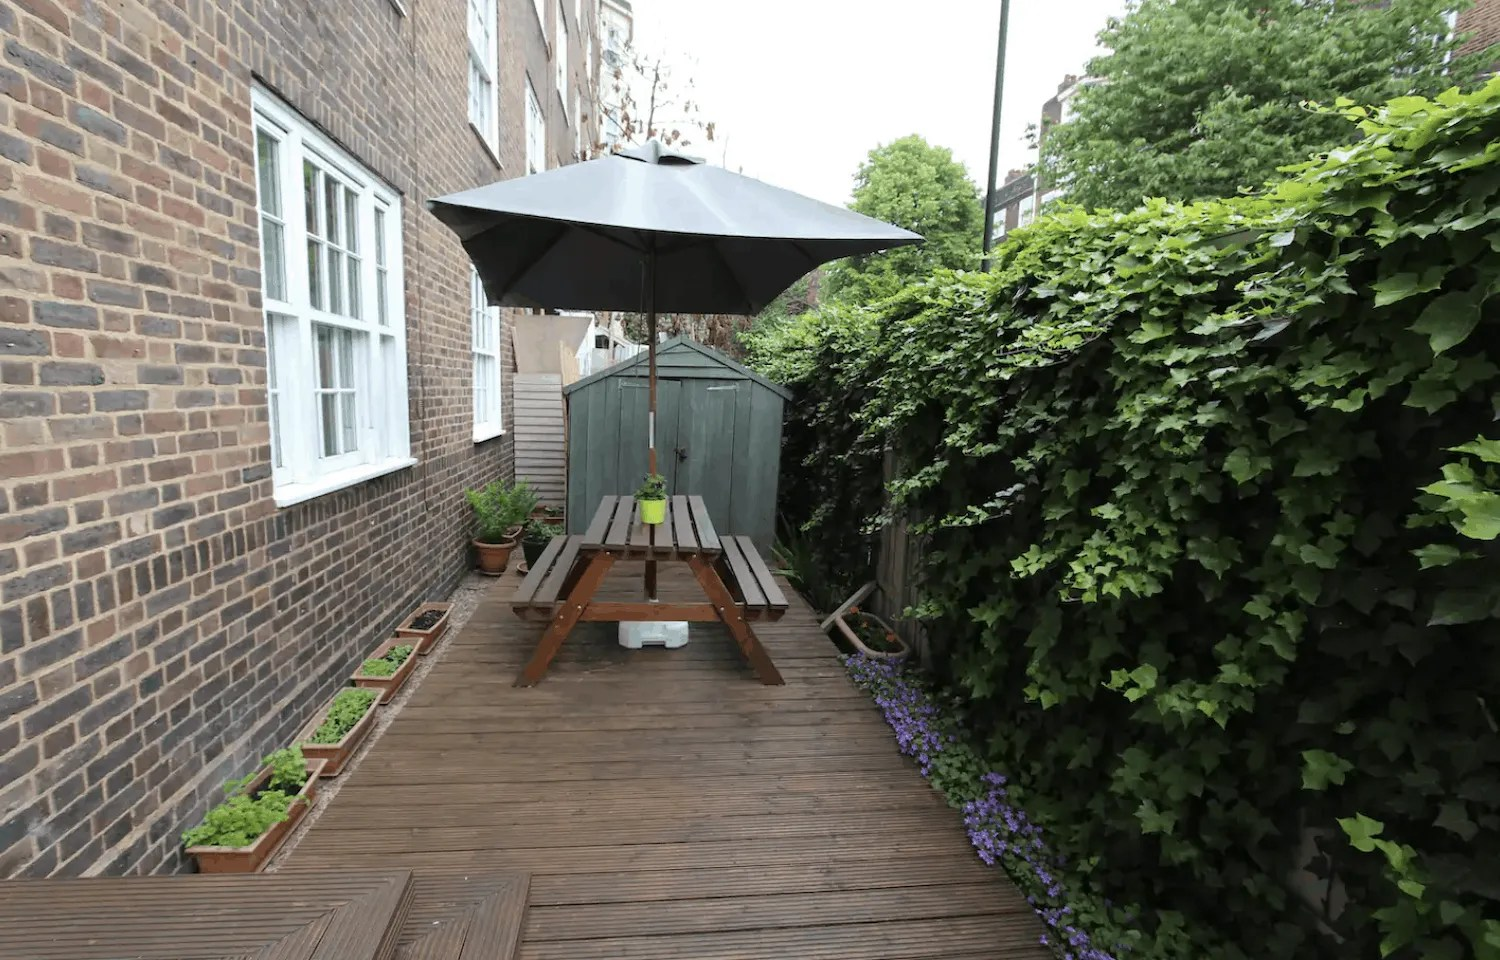 Budget London Airbnbs - Lambeth 2br Garden